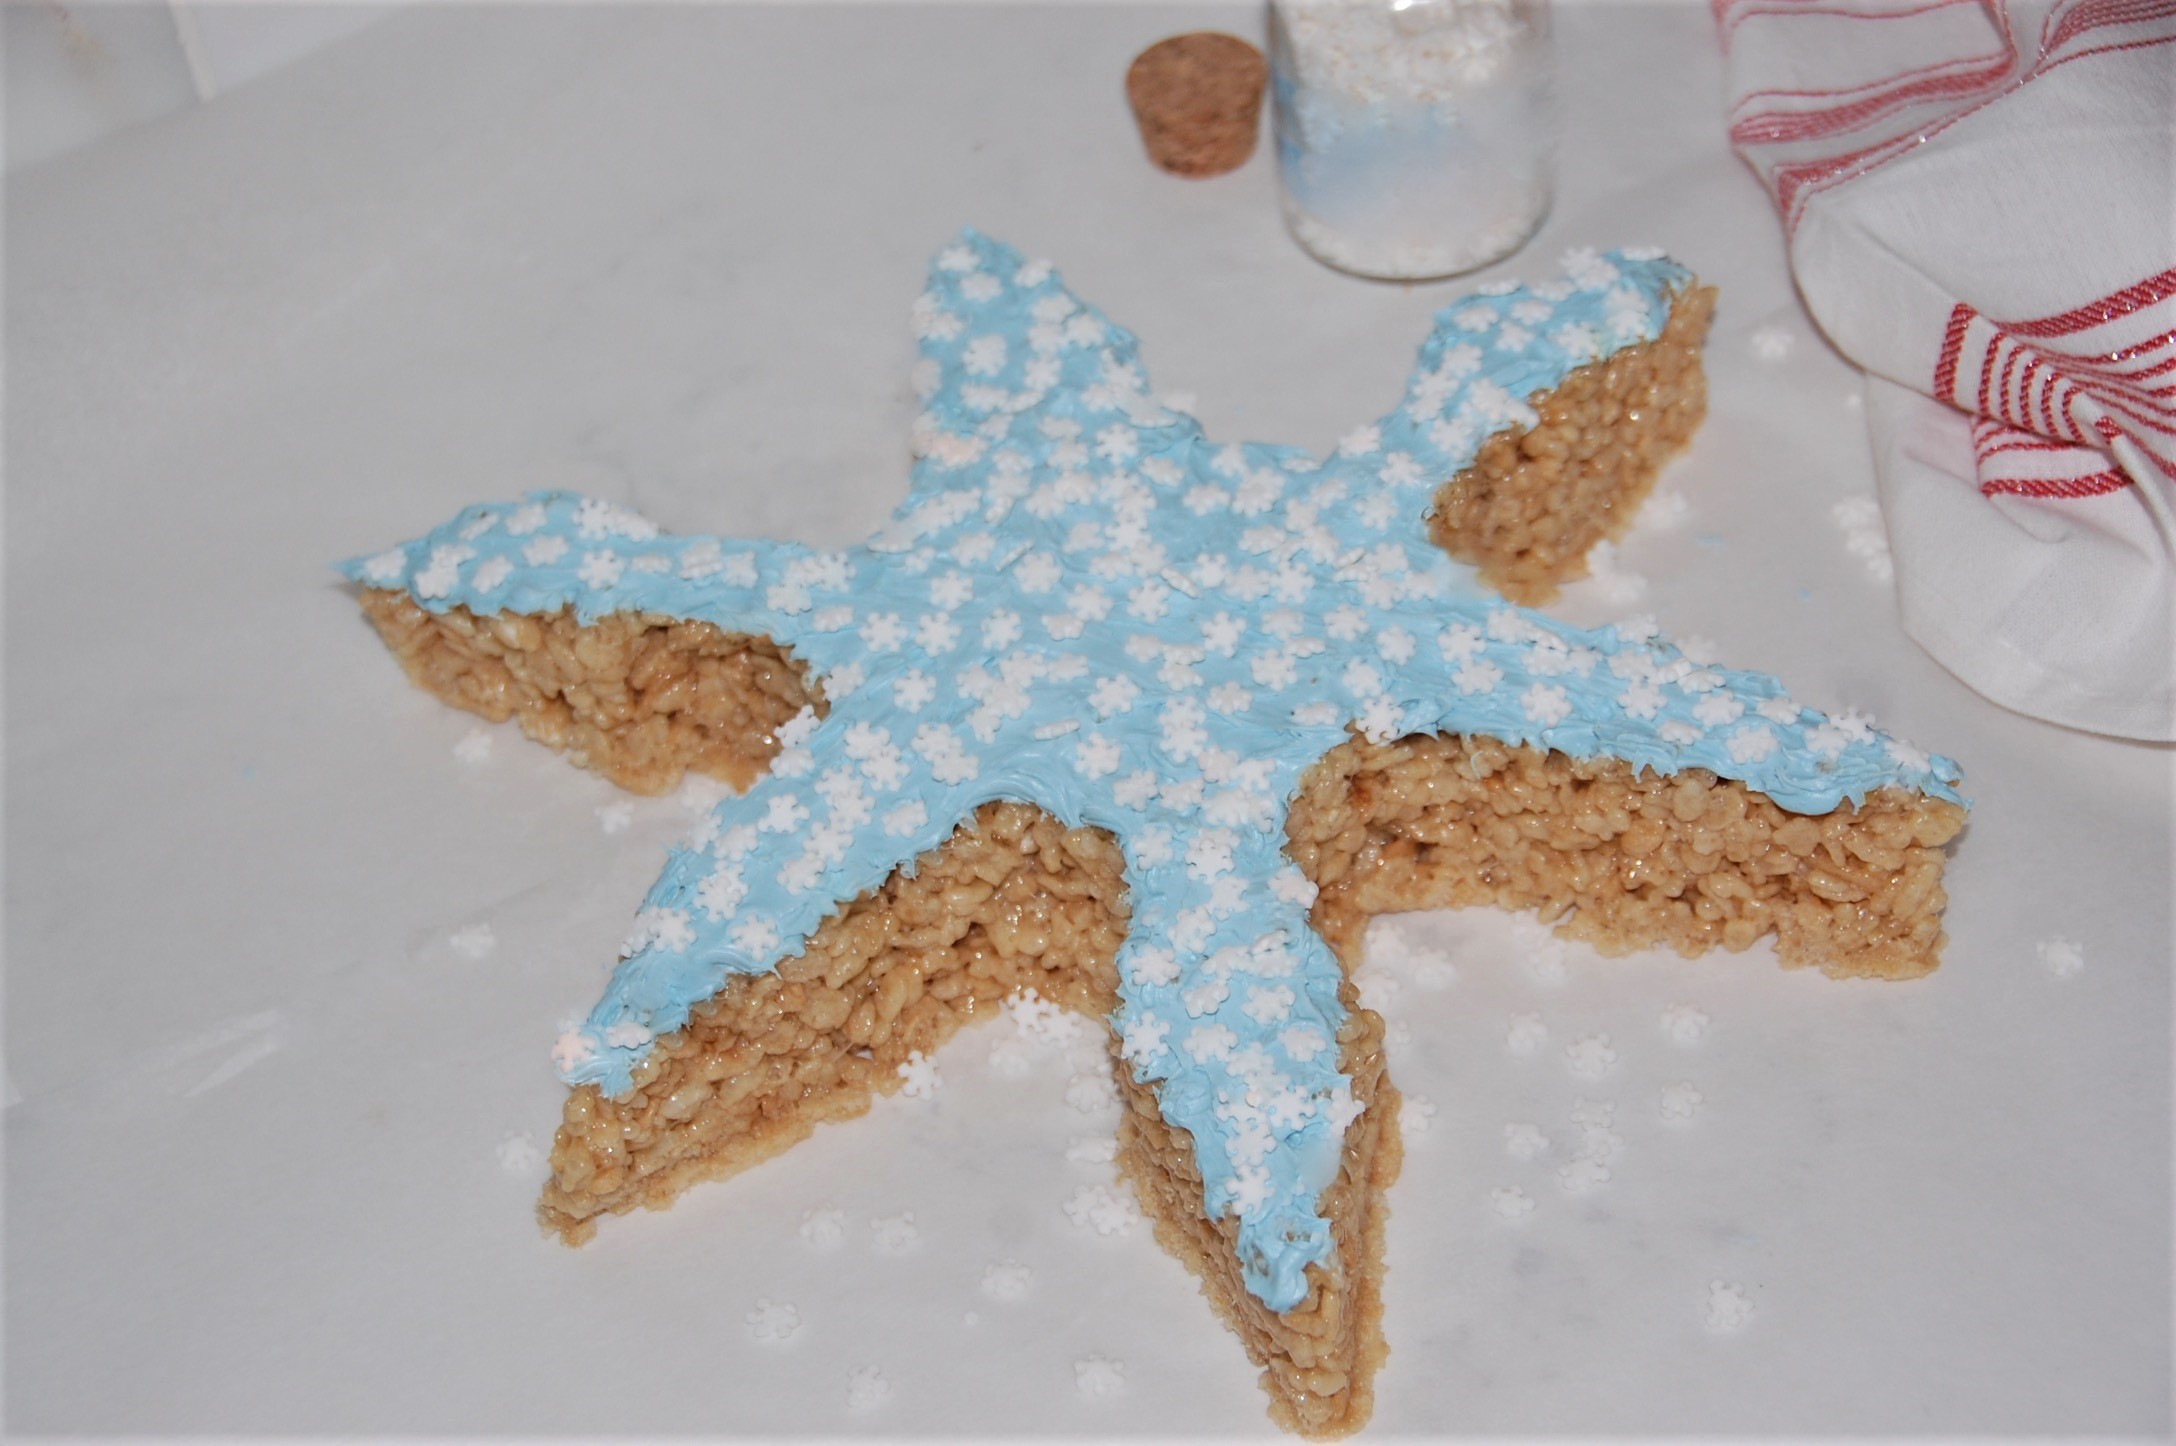 Use a giant or standard cookie cutter to make your Rice Krispies Treats into shapes